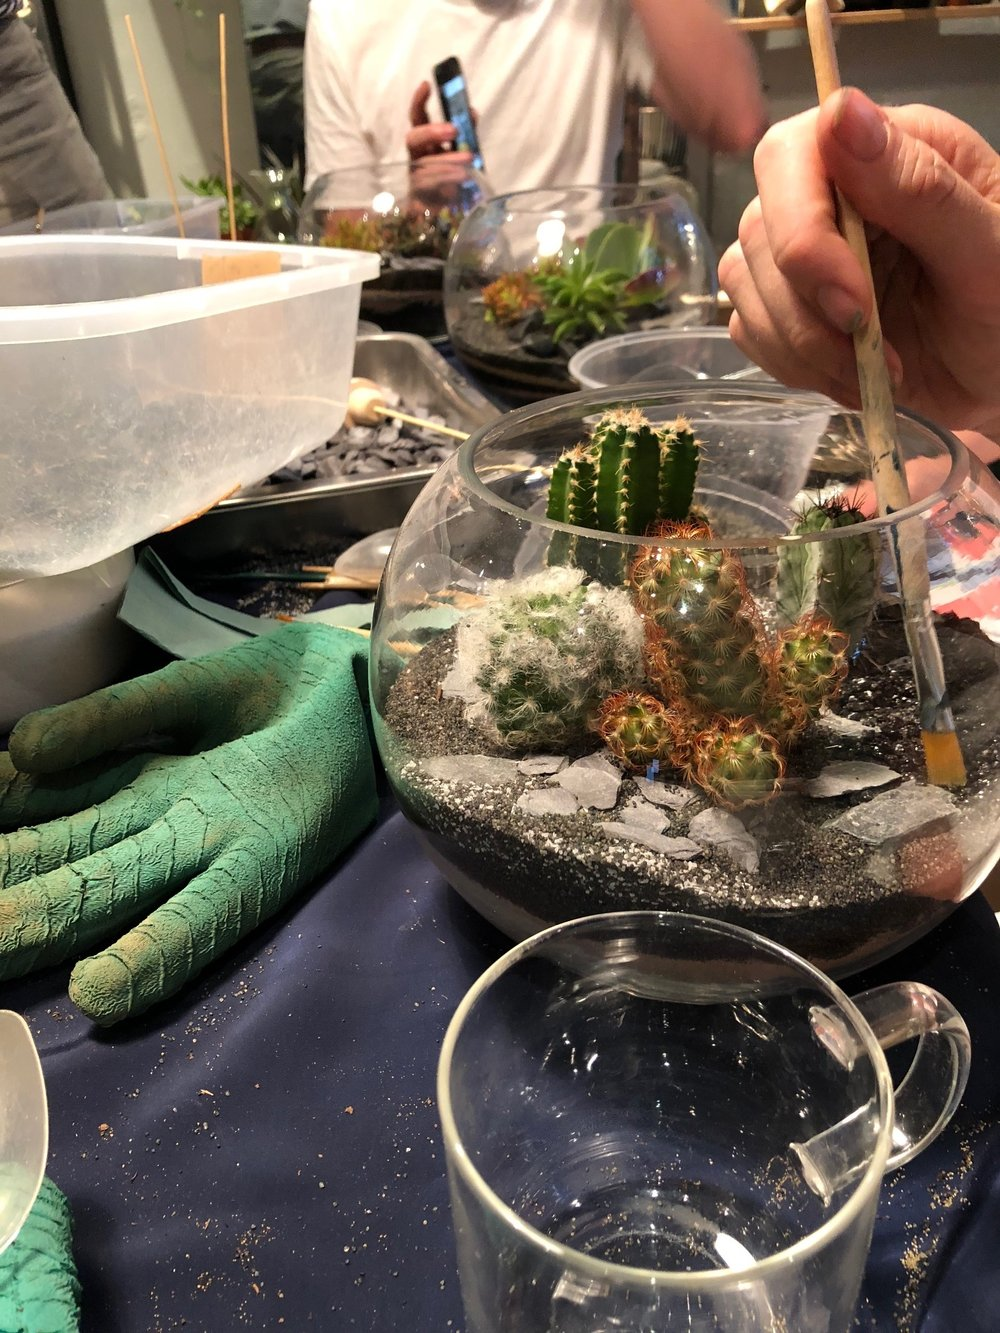 terrarium workshop near me, terrarium workshop london, terrariums uk